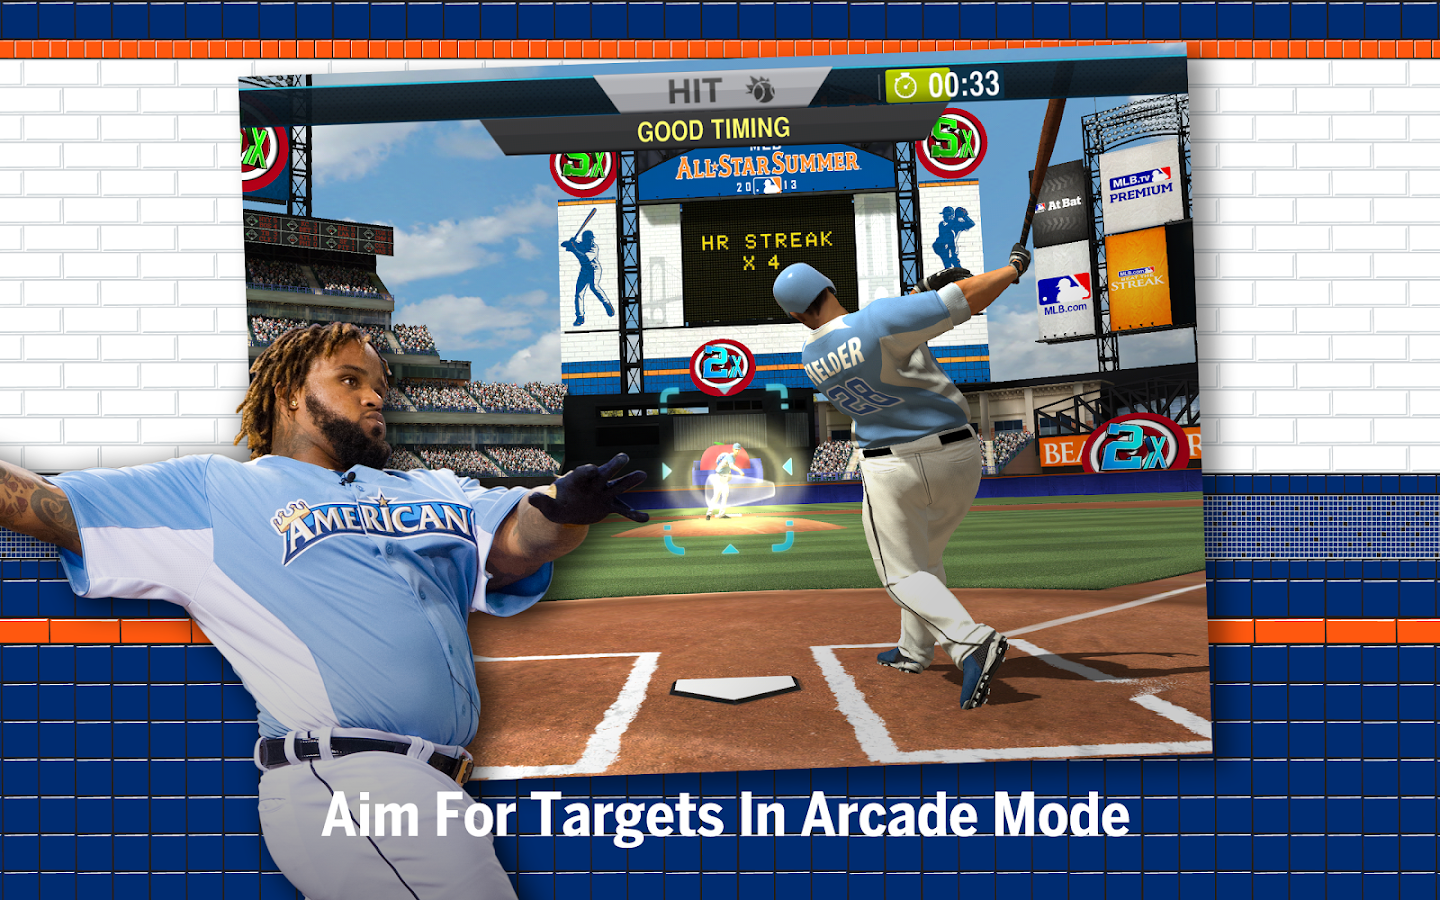 MLB.com Home Run Derby v1.1.149820 Apk Zippy